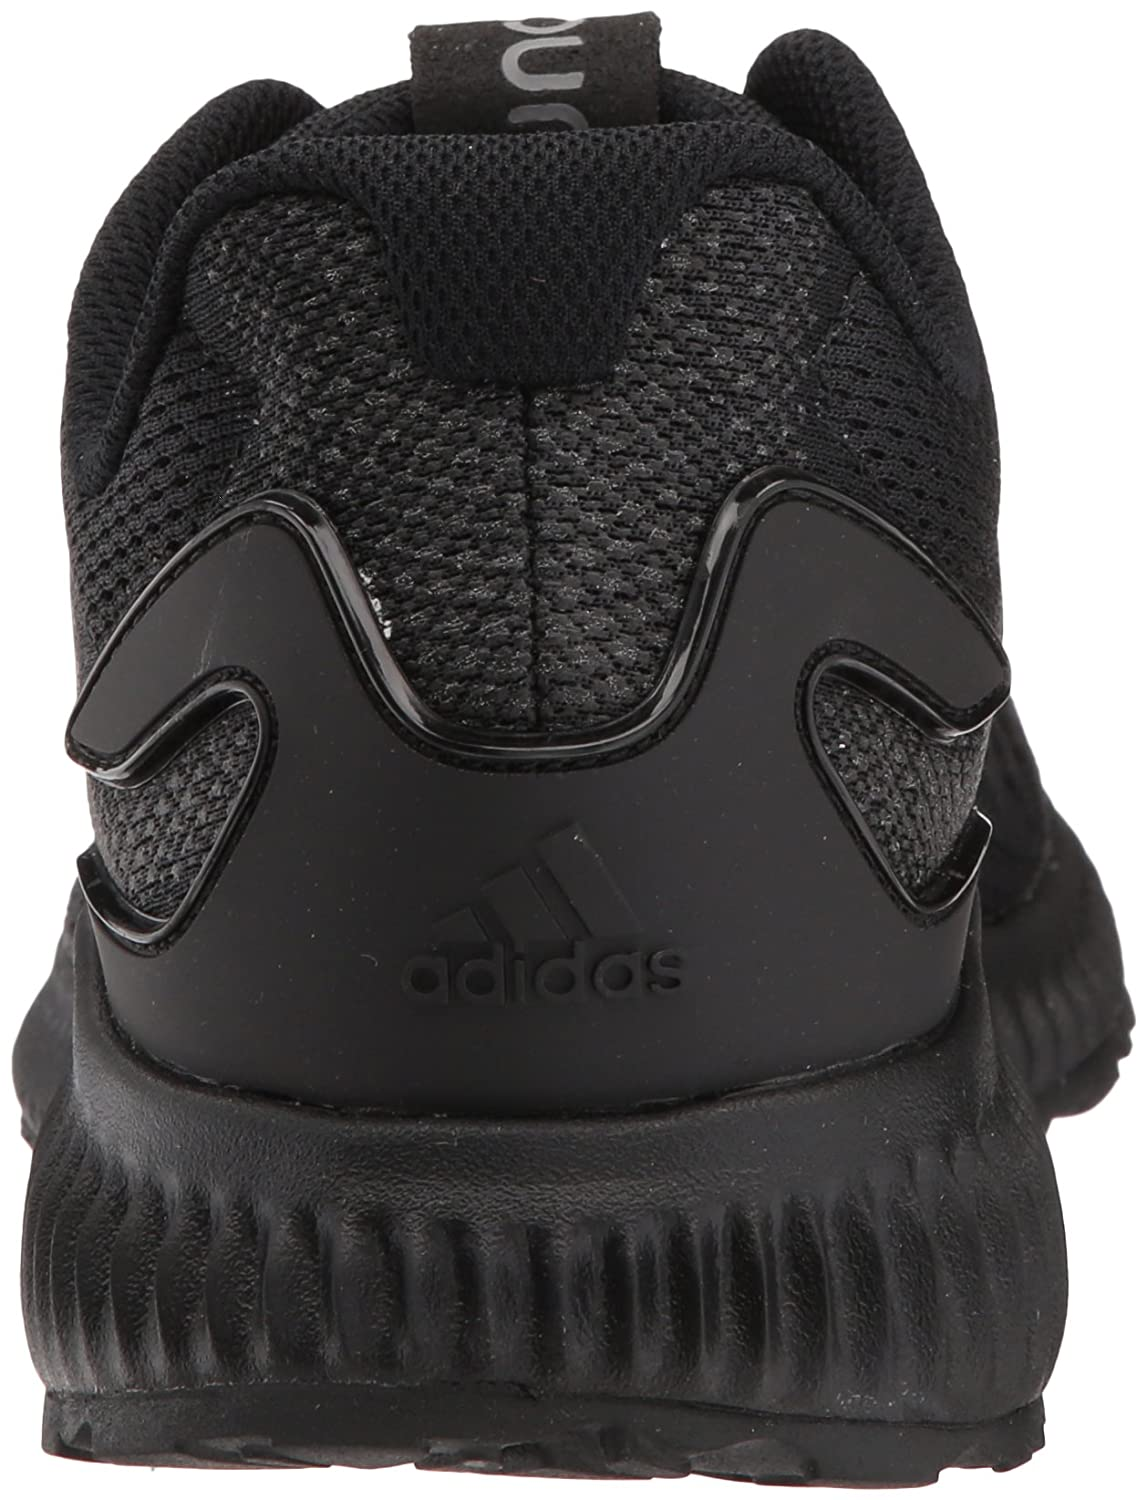 adidas Women's Aerobounce W Running Shoe B0716YFCGG 5 B(M) US|Core Black/Core Black/Grey Four